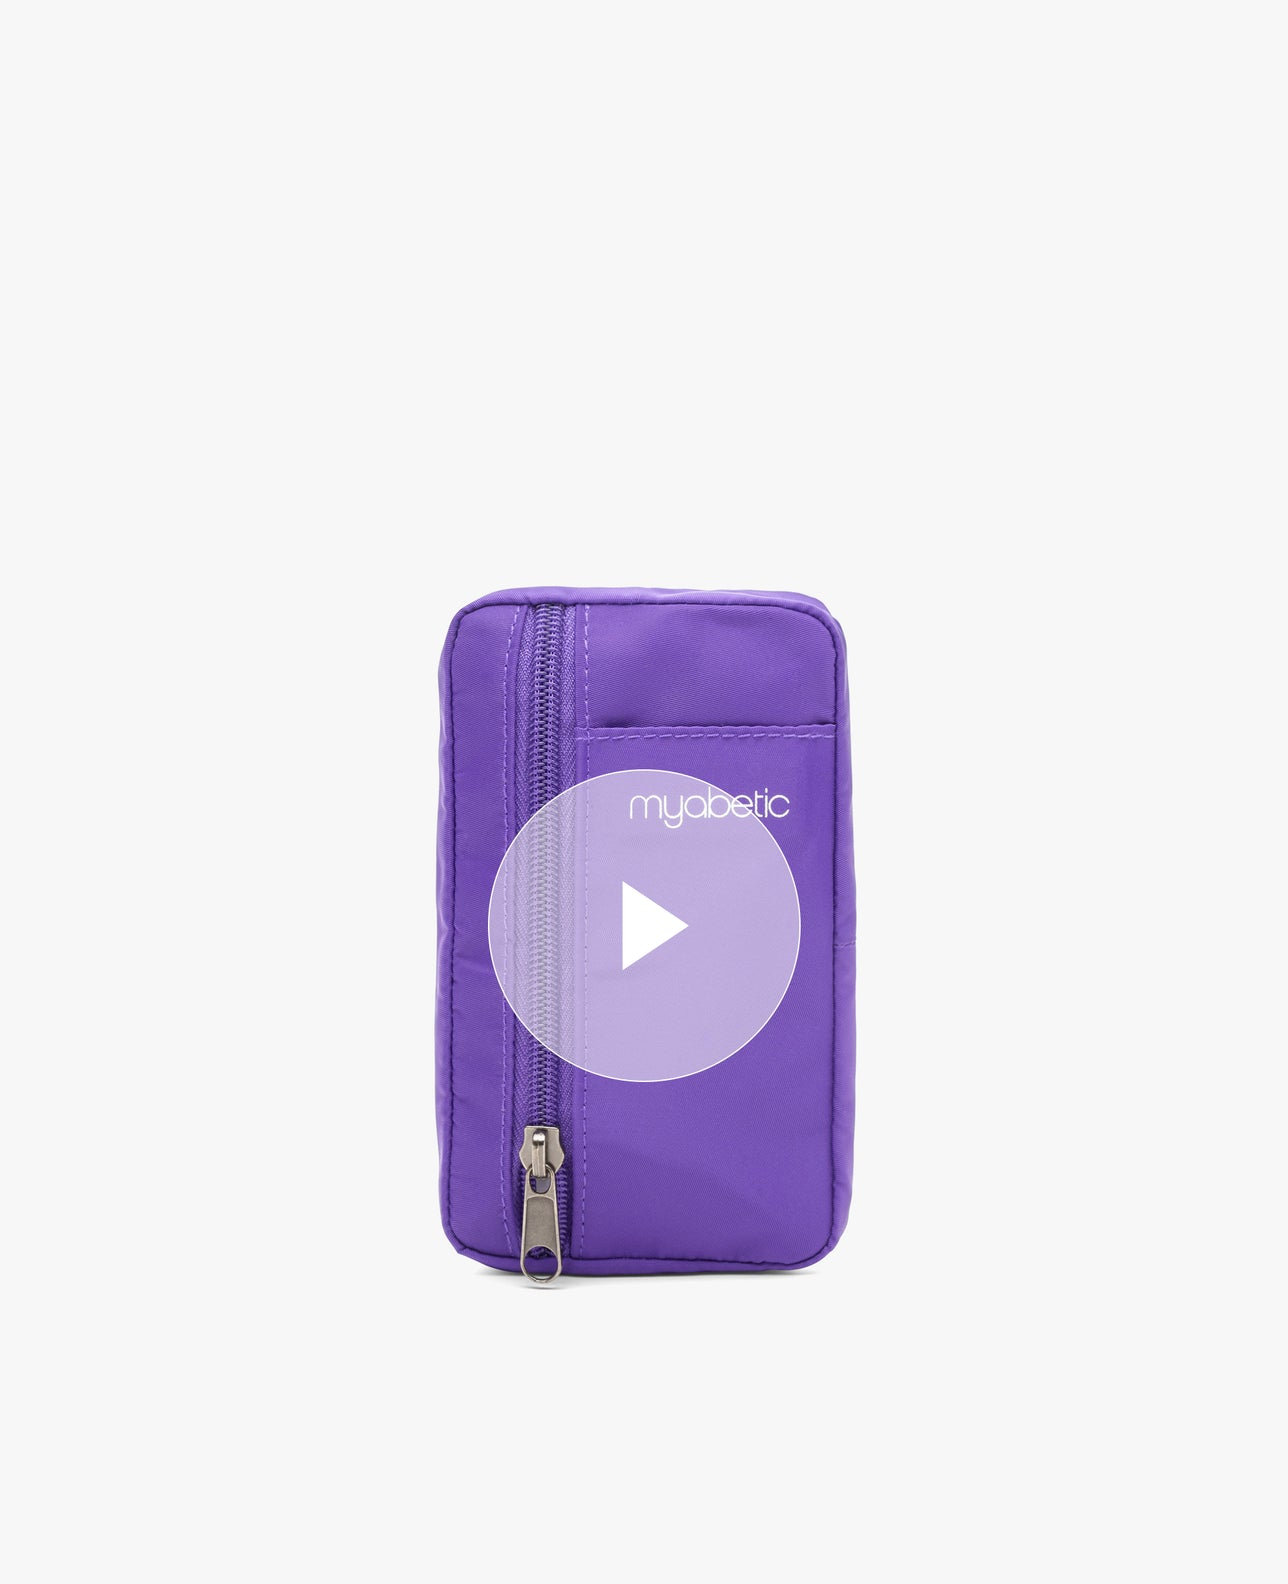 color:purple  https://youtube.com/embed/sw-399MNGkw